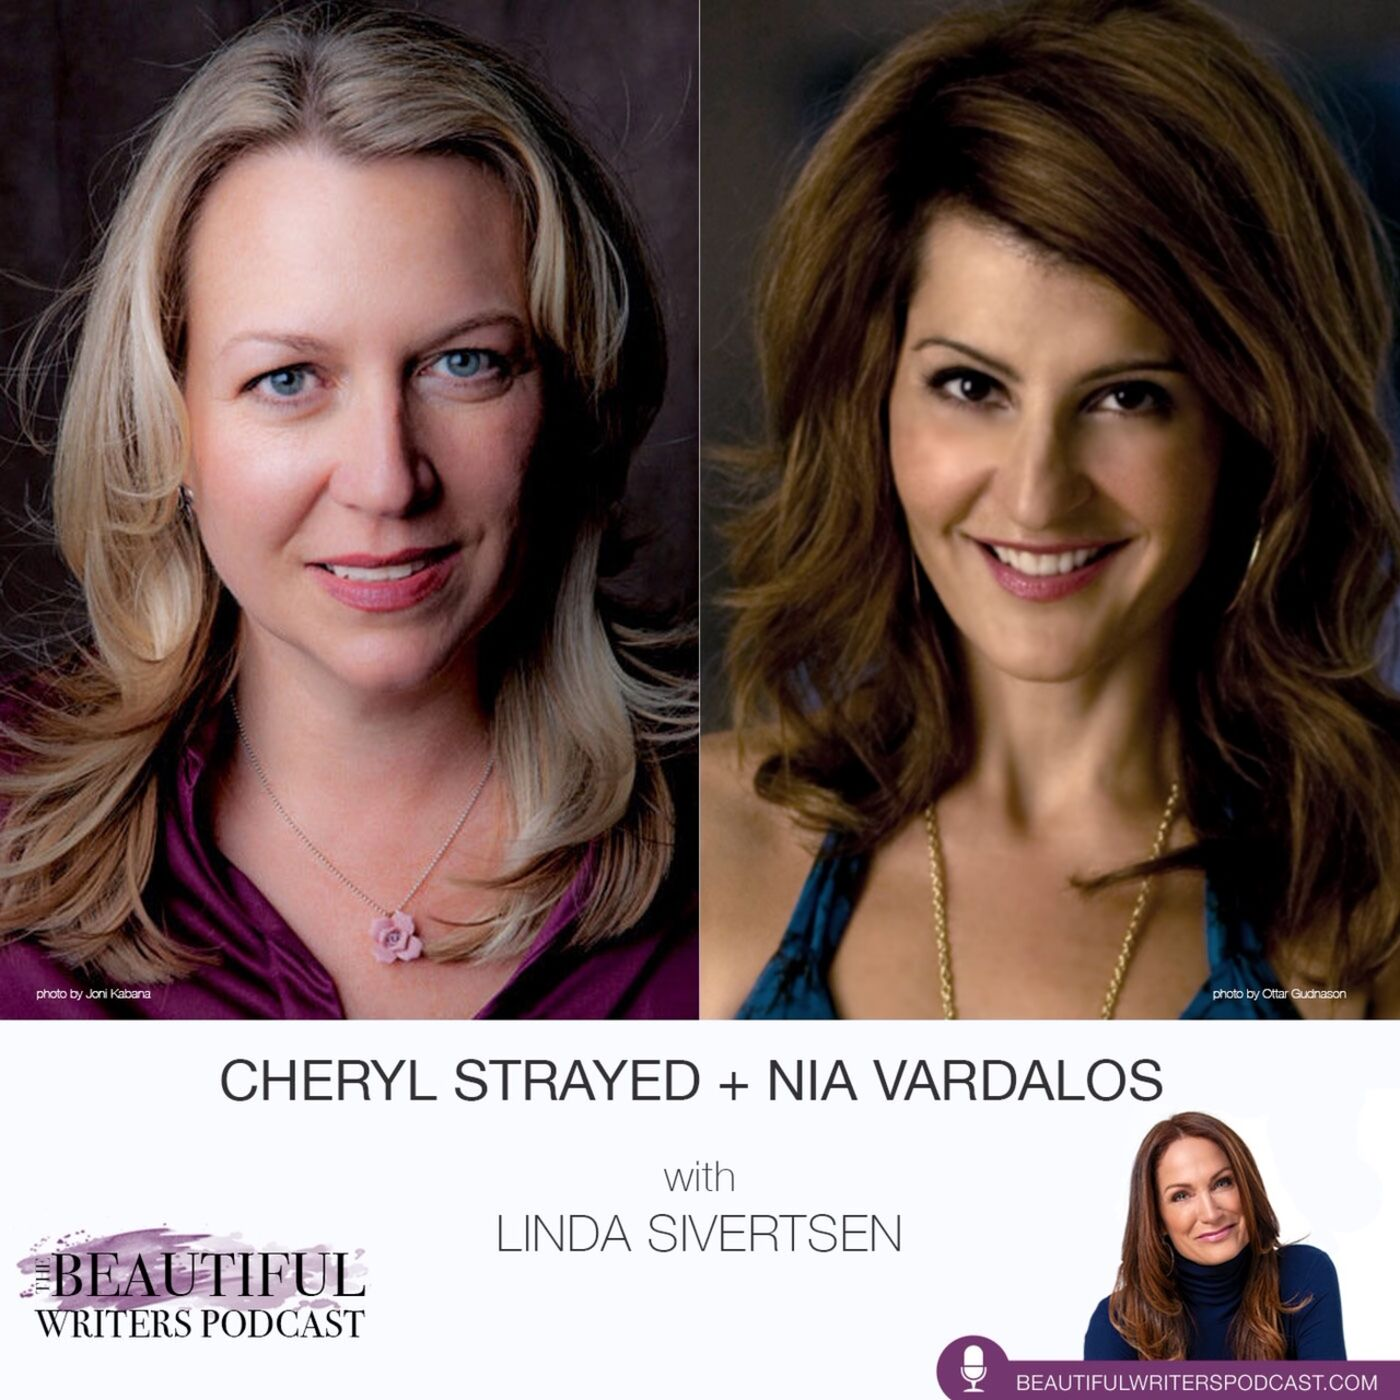 Cheryl Strayed & Nia Vardalos: Answering the Biggest Questions that Stump Writers